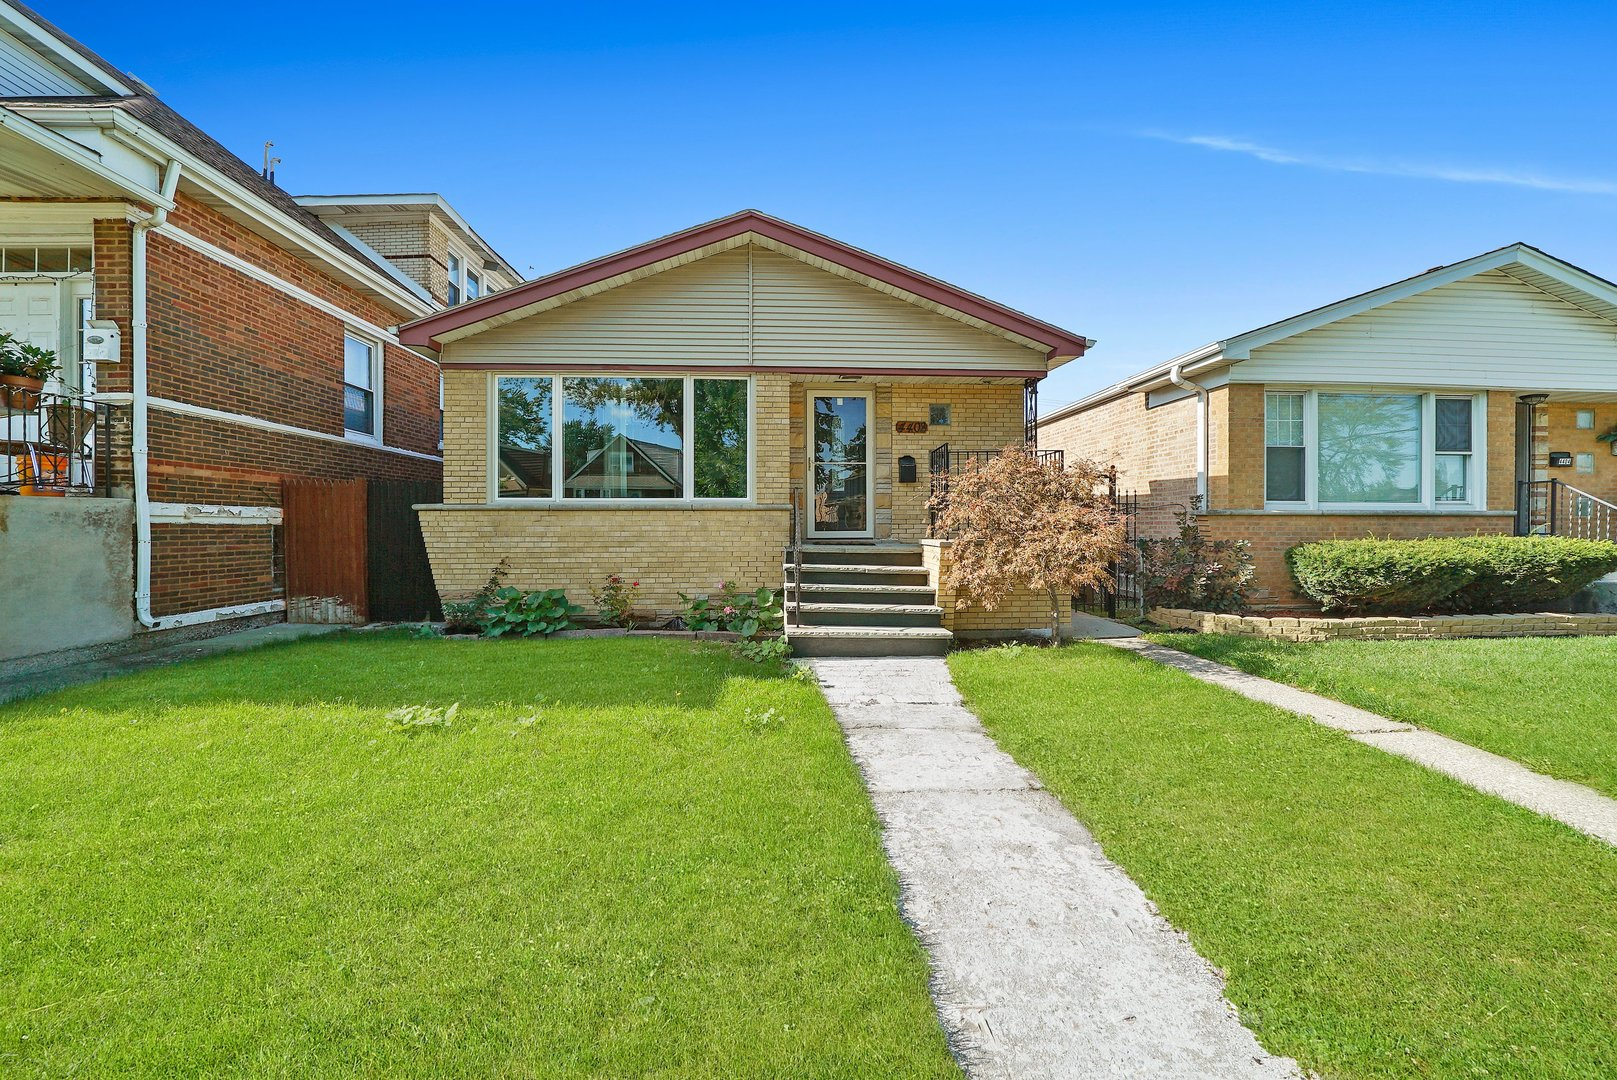 4408 S Keating Avenue, Chicago IL 60632